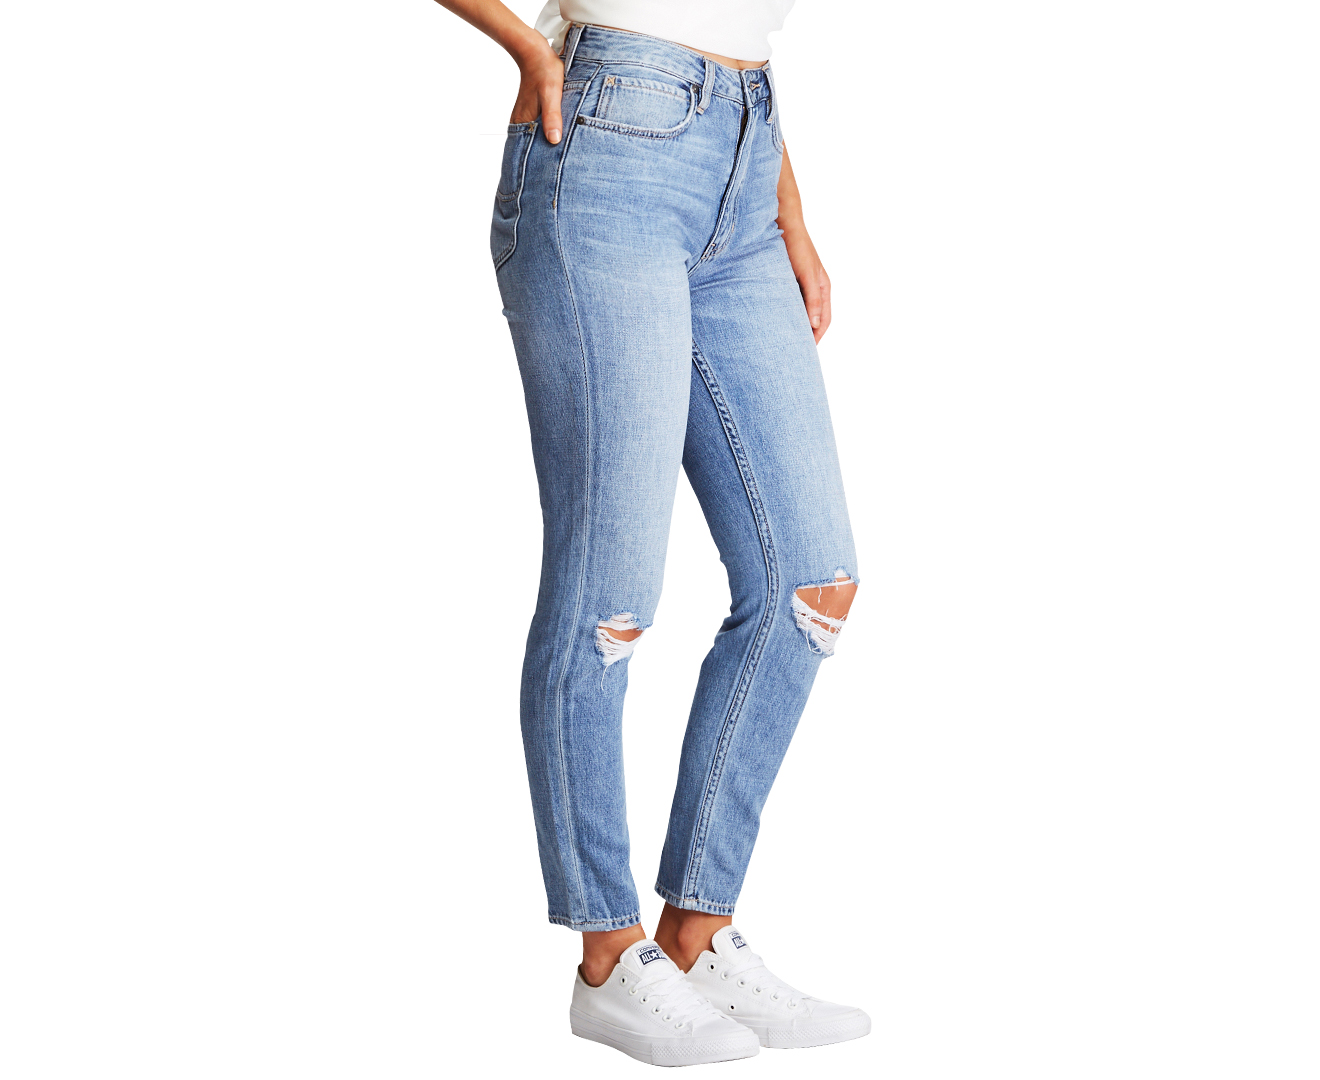 The latest Tweets from Lee Jeans Australia (@leejeansaus). The Official Lee Jeans Australia - #leejeansaustralia. Melbourne, Victoria.